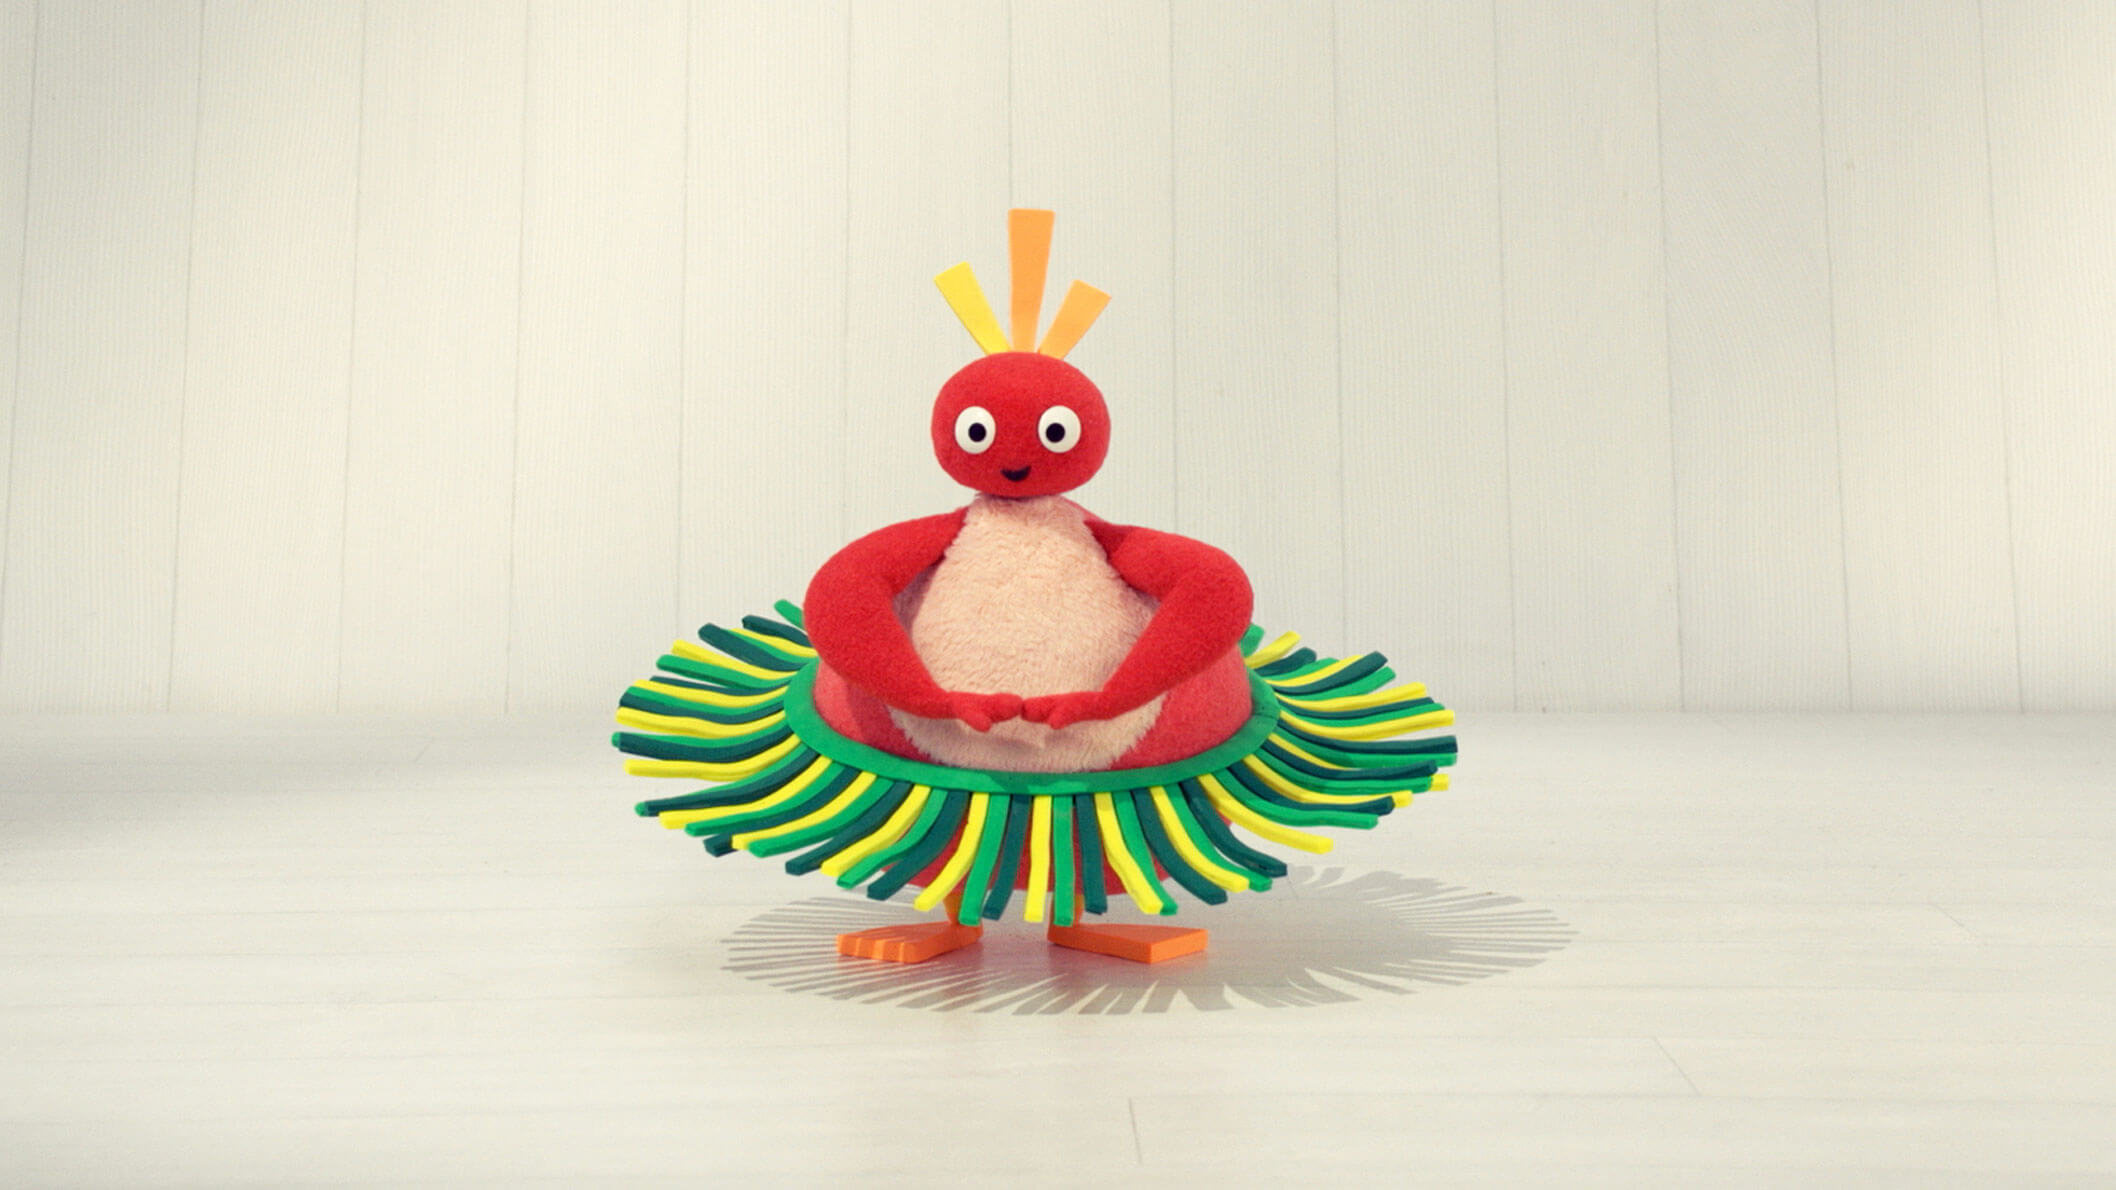 A red character with a pear-shaped body and a round head wearing a green hula skirt in front of a white background.